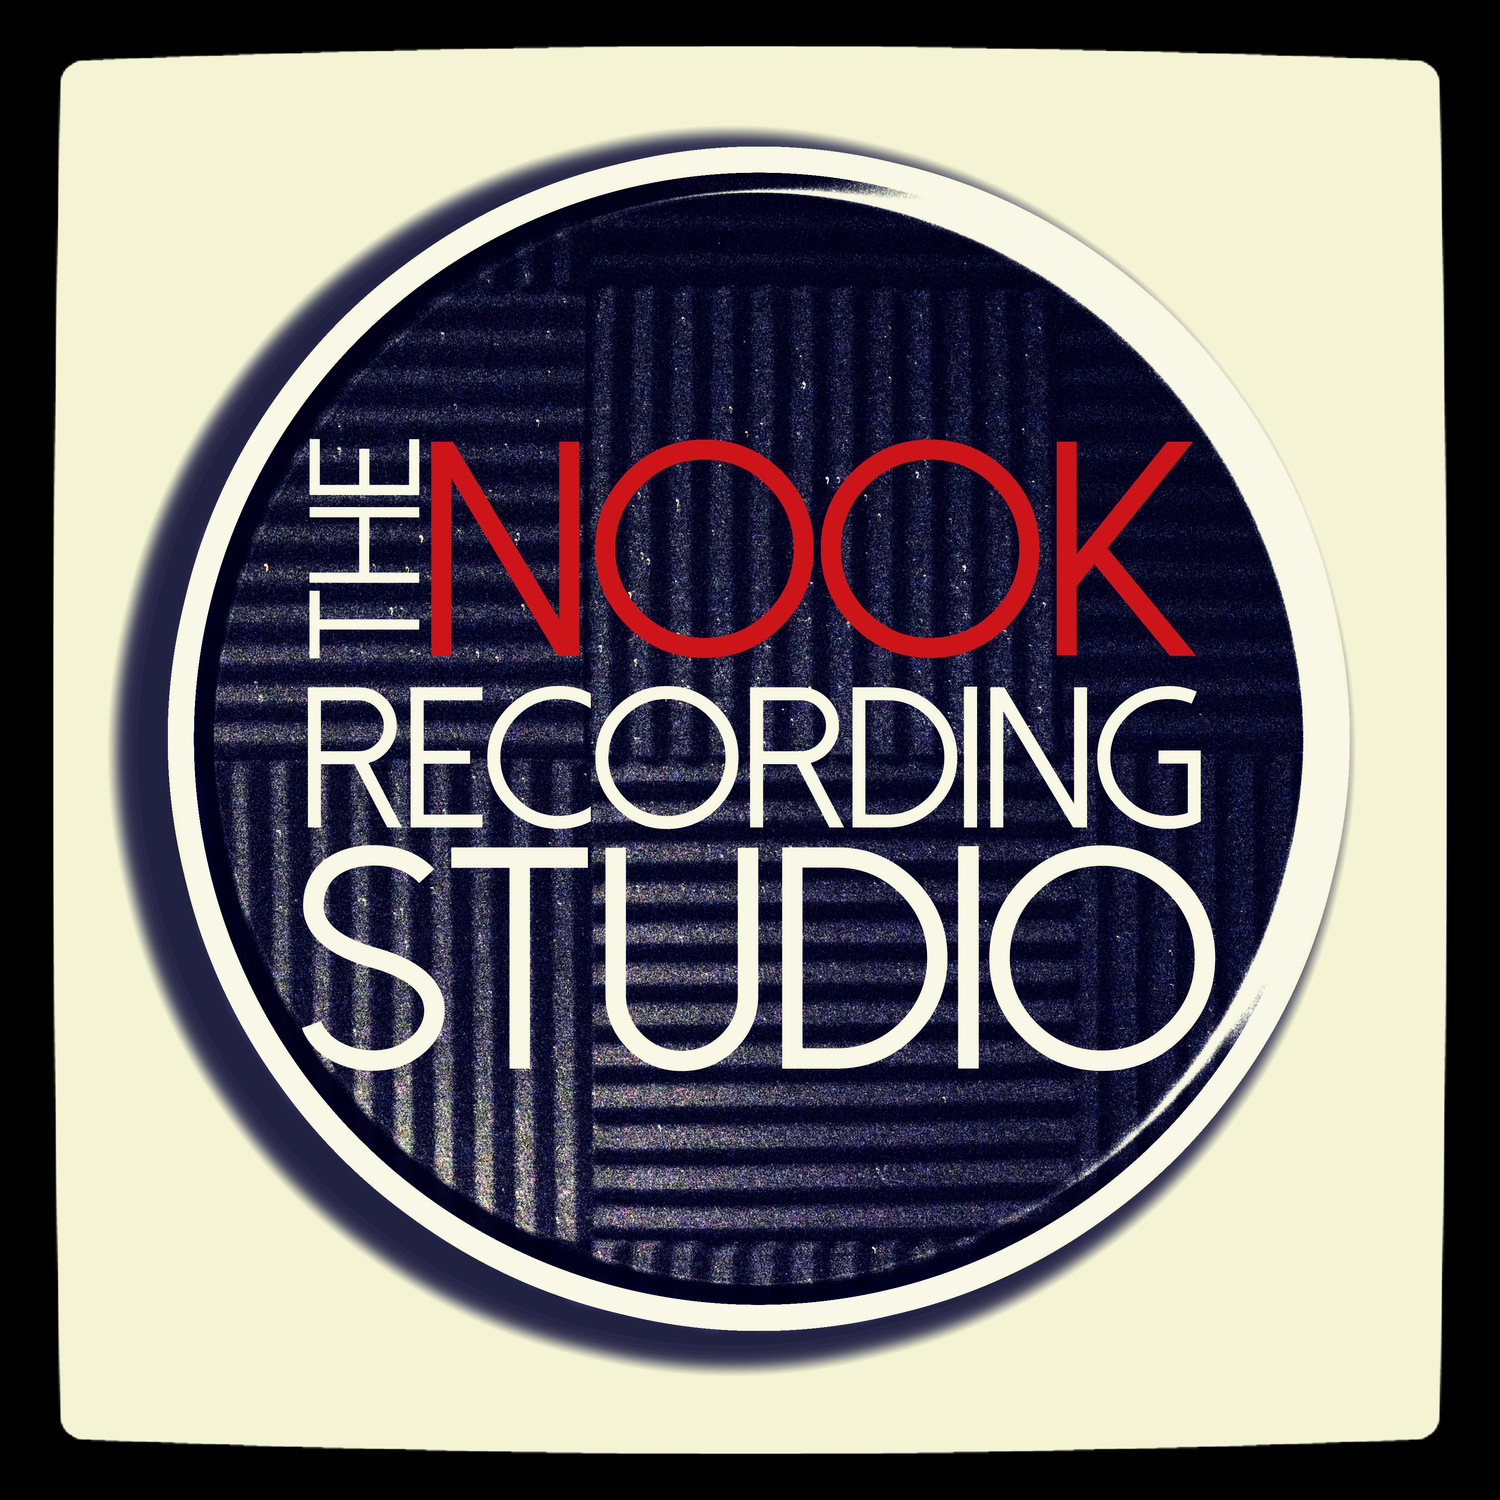 The Nook Recording Studio